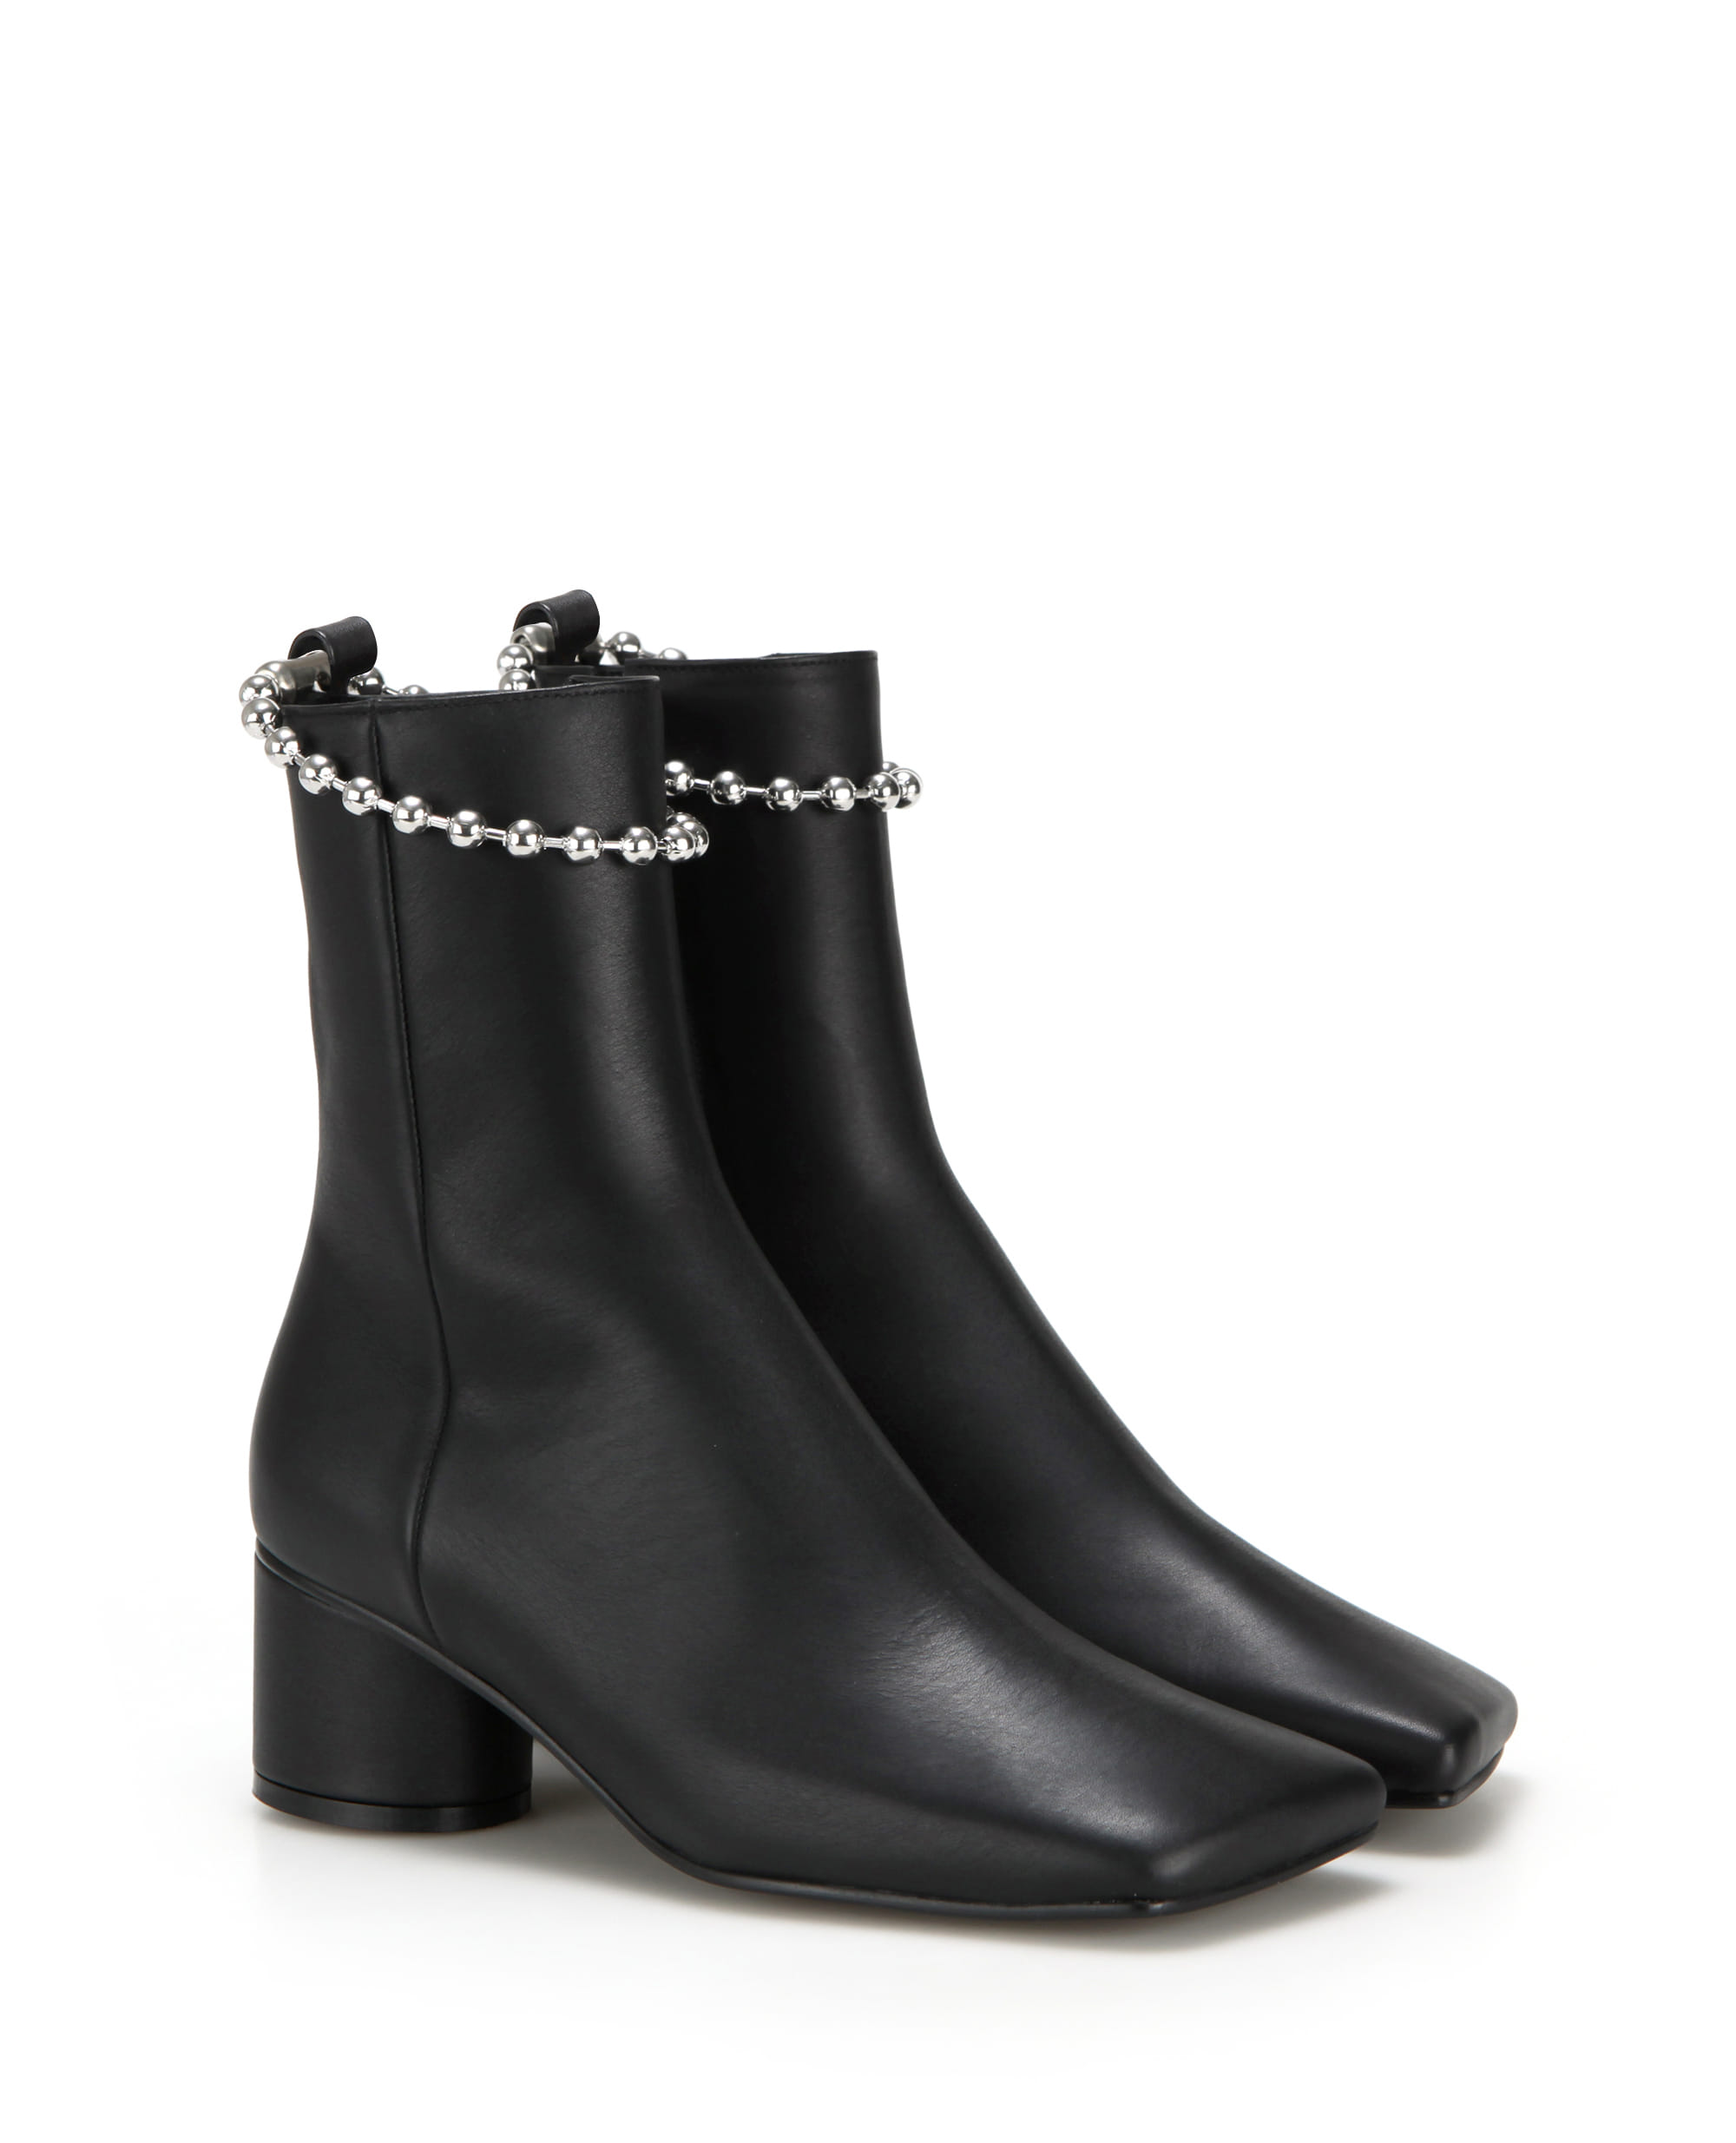 flatapartment, flat apartment, boots, ankle boots, ankleboots, ball chain, shoes, Seoul fashion, k fashion, flat apartment shoes